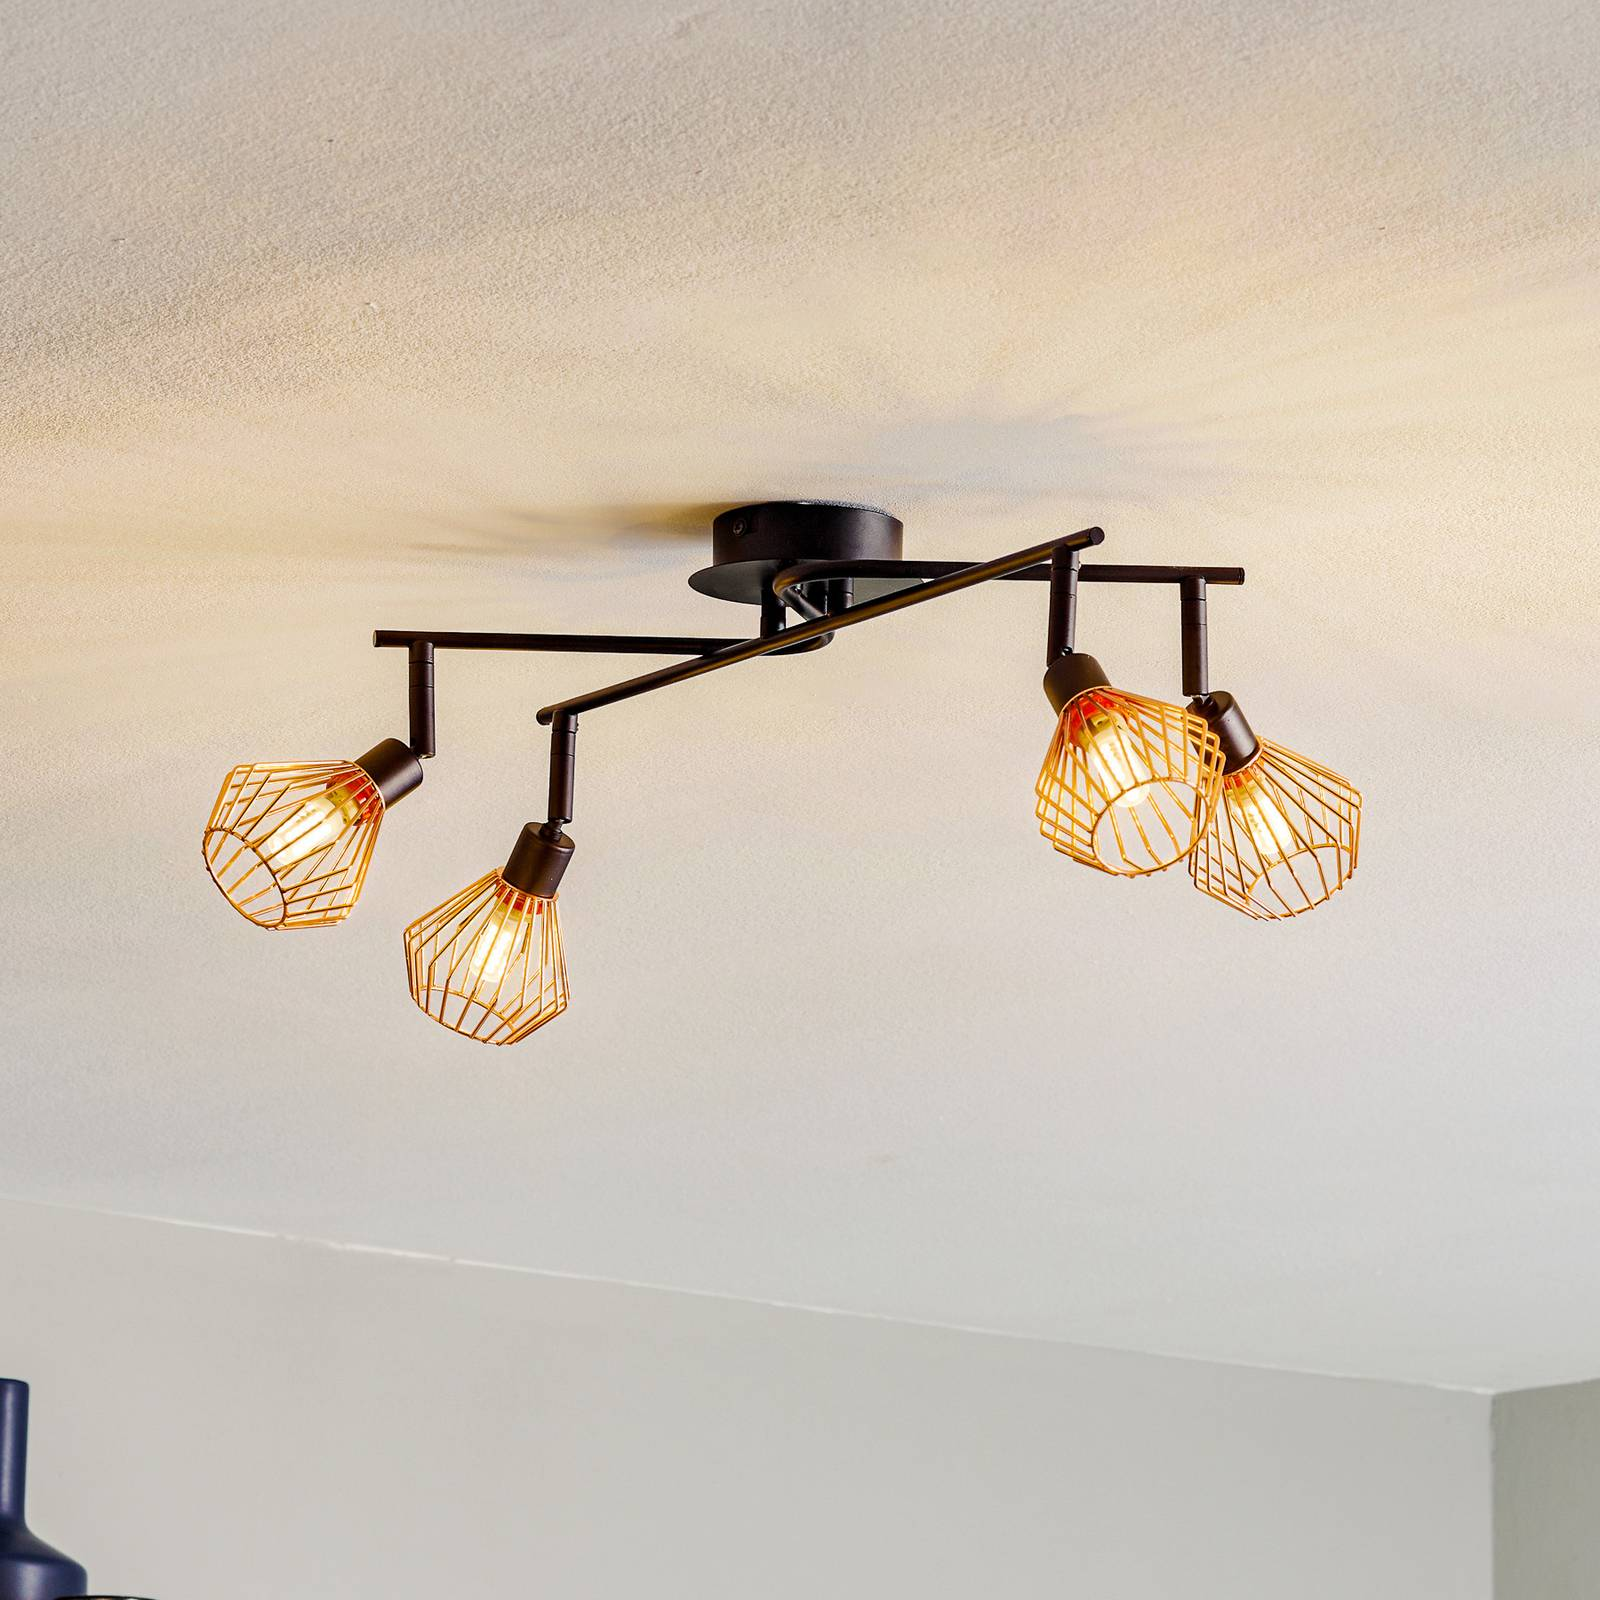 4-bulb Dalma ceiling light from Brilliant